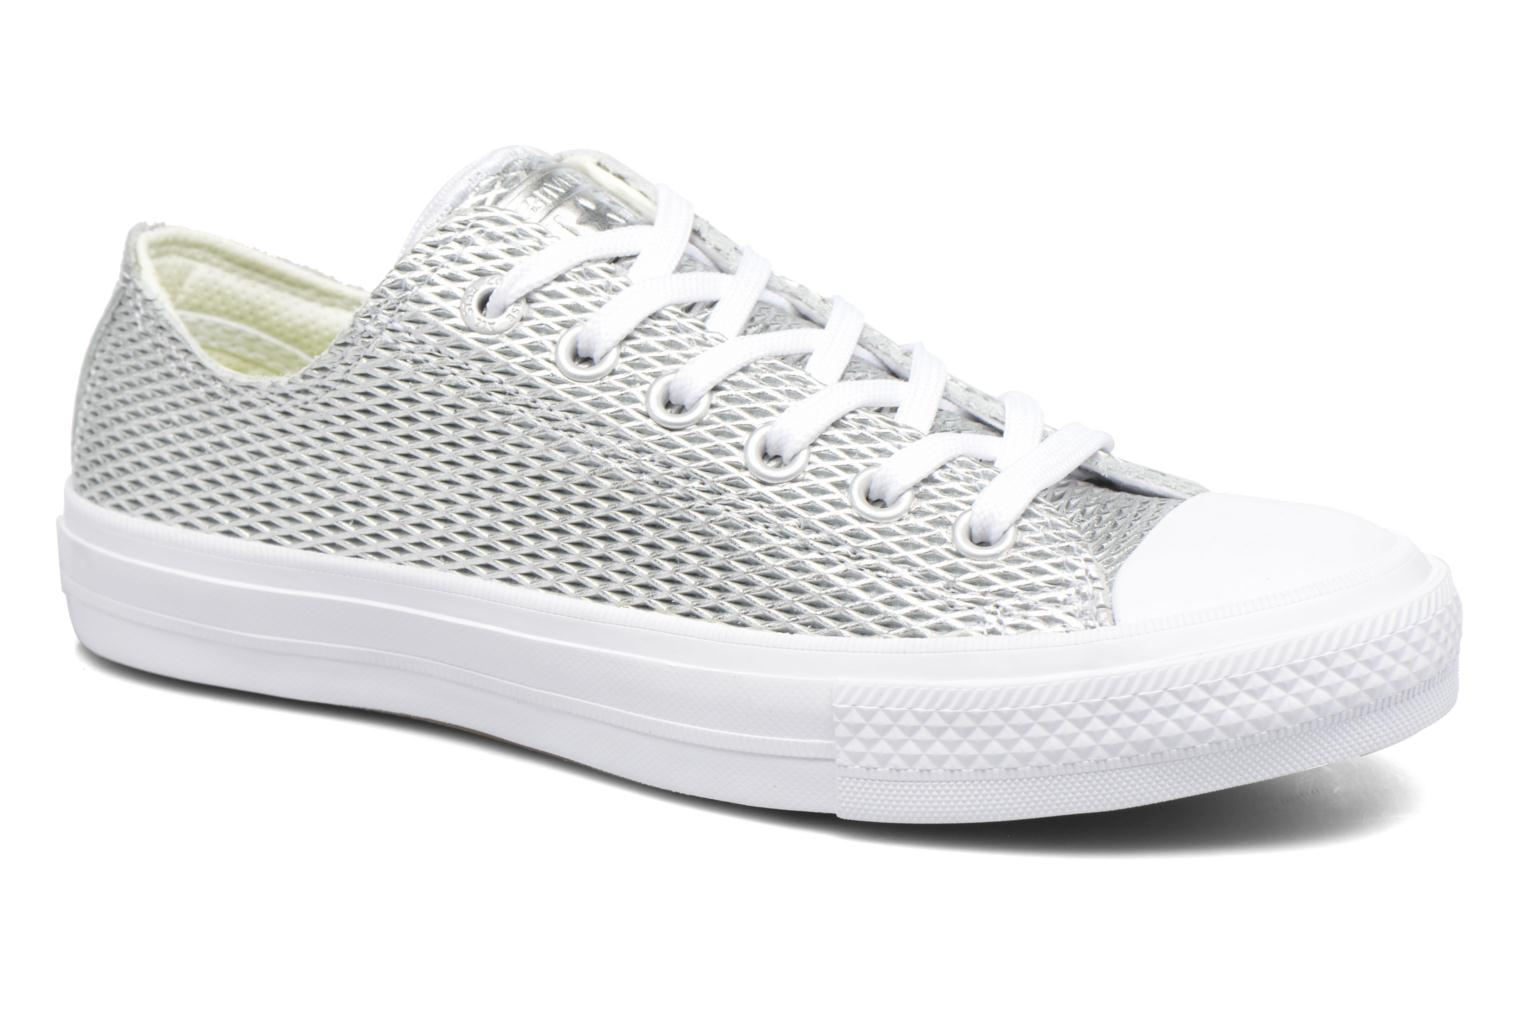 Deportivas Converse Chuck Taylor All Star II Ox Perf Metallic Leather Plateado vista de detalle / par